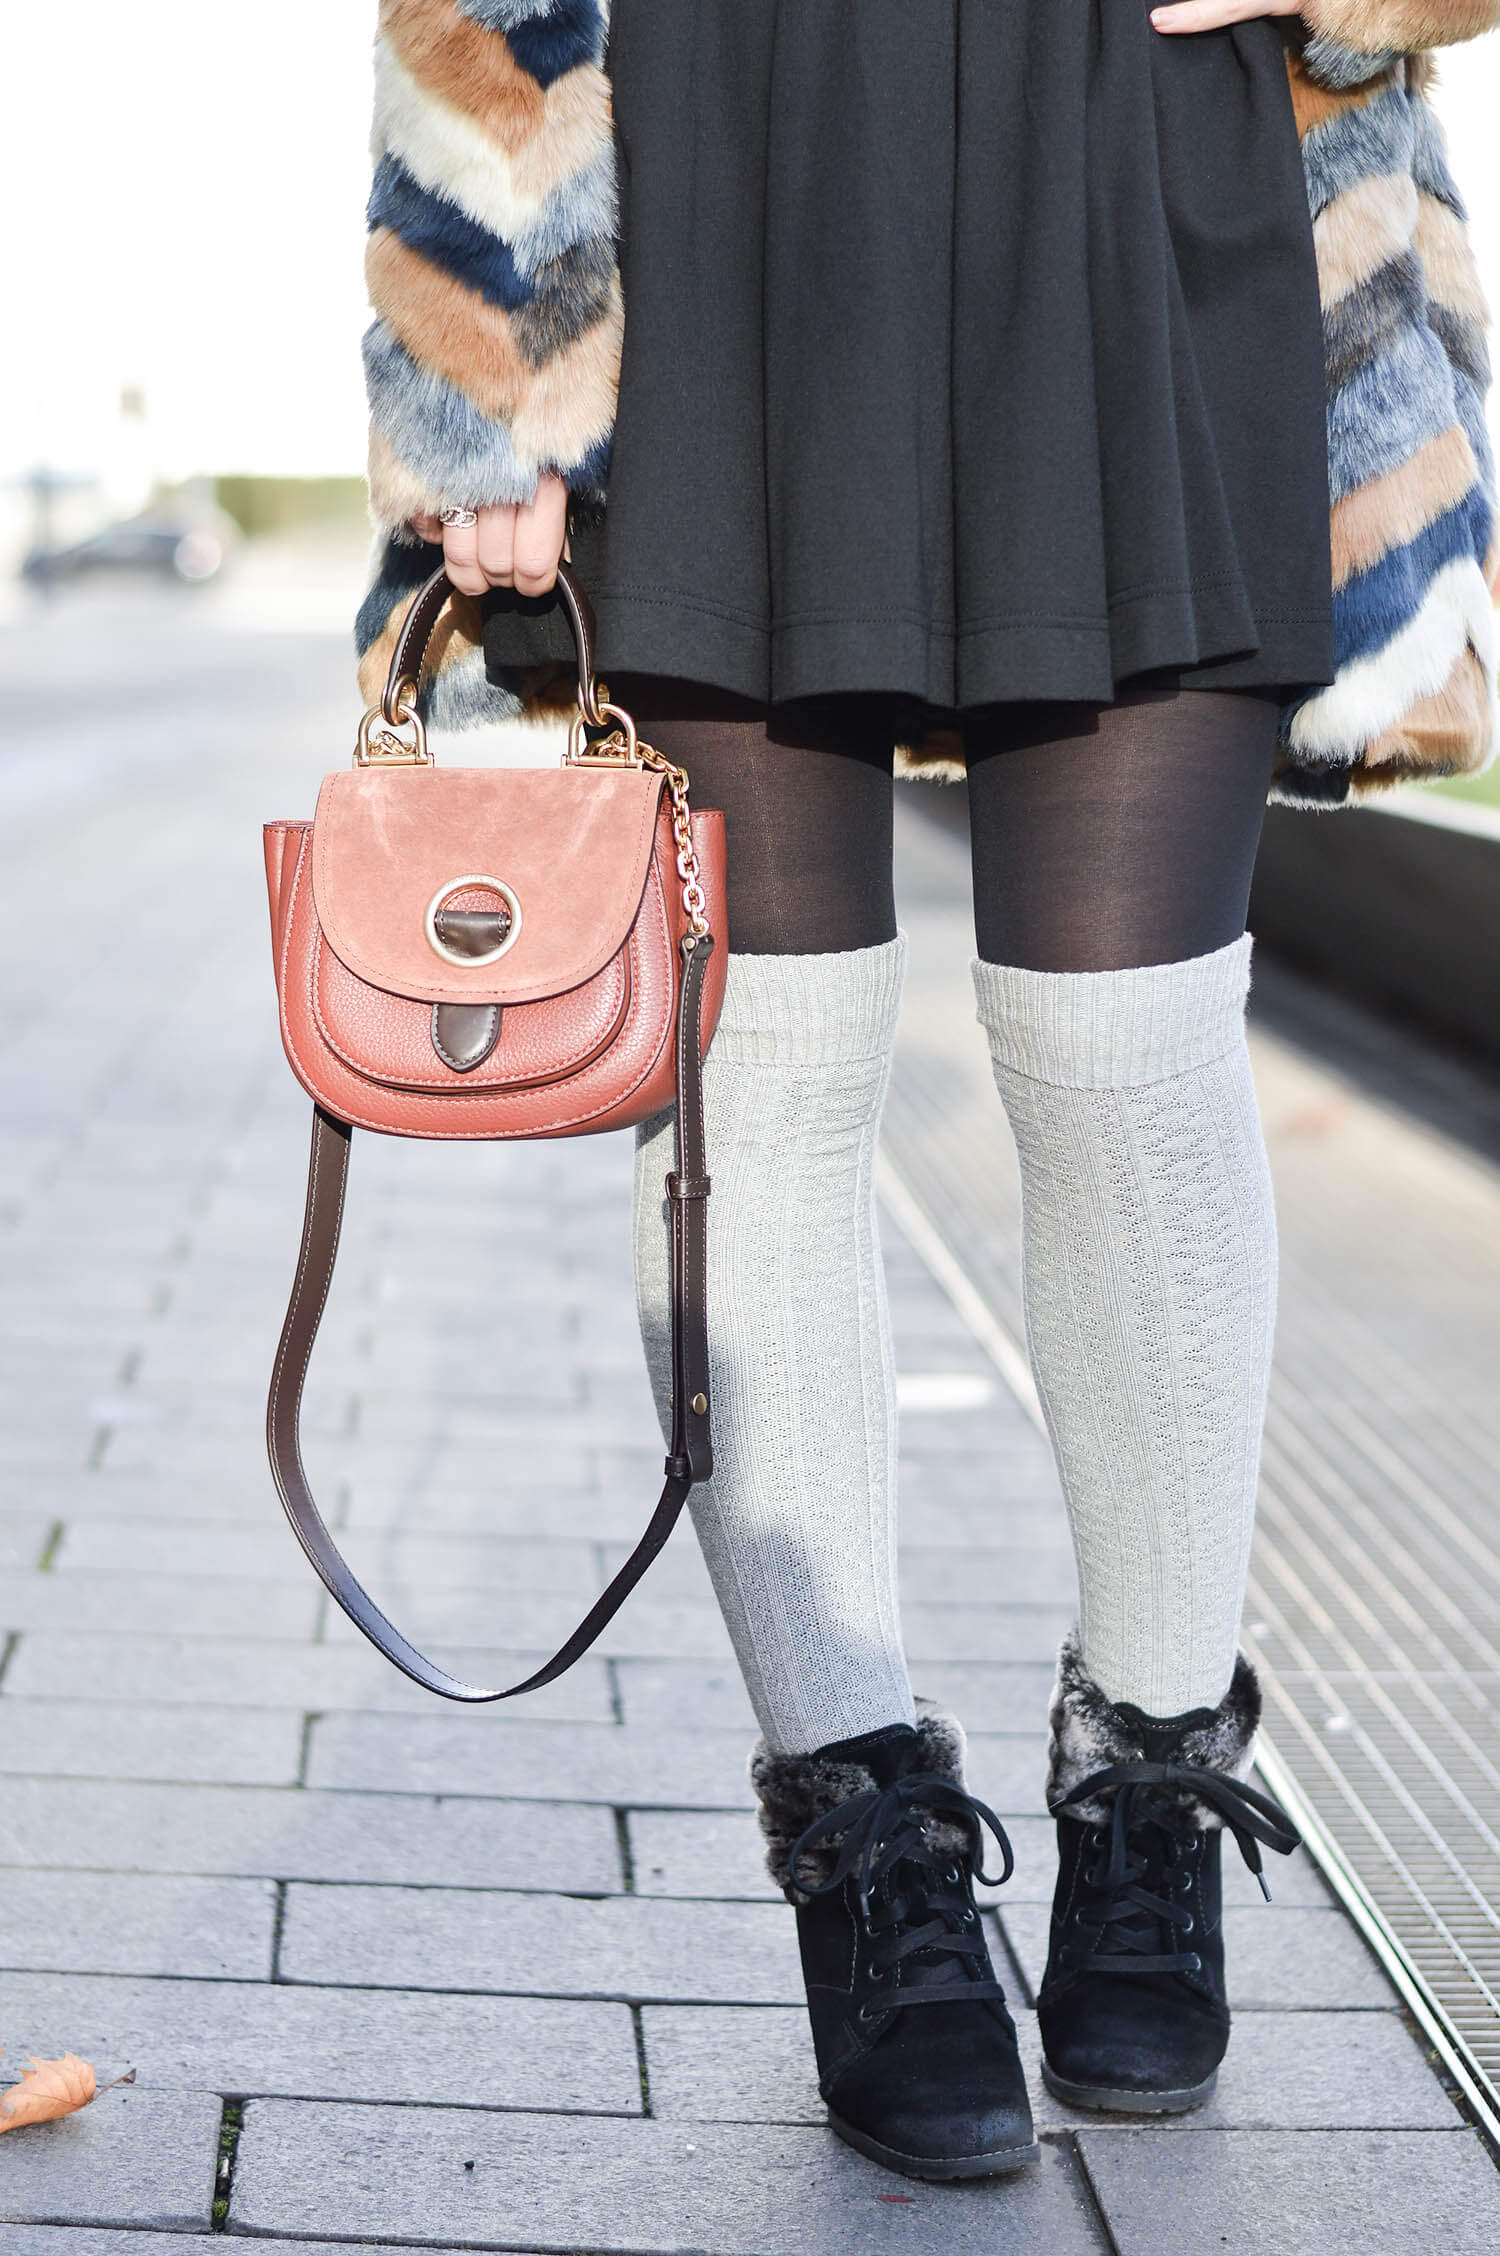 Kationette-fashionblog-Outfit-Cozy-Winter-streetstyle-Fake-Fur-Overknee-Socks-michaelkors-saddlebag